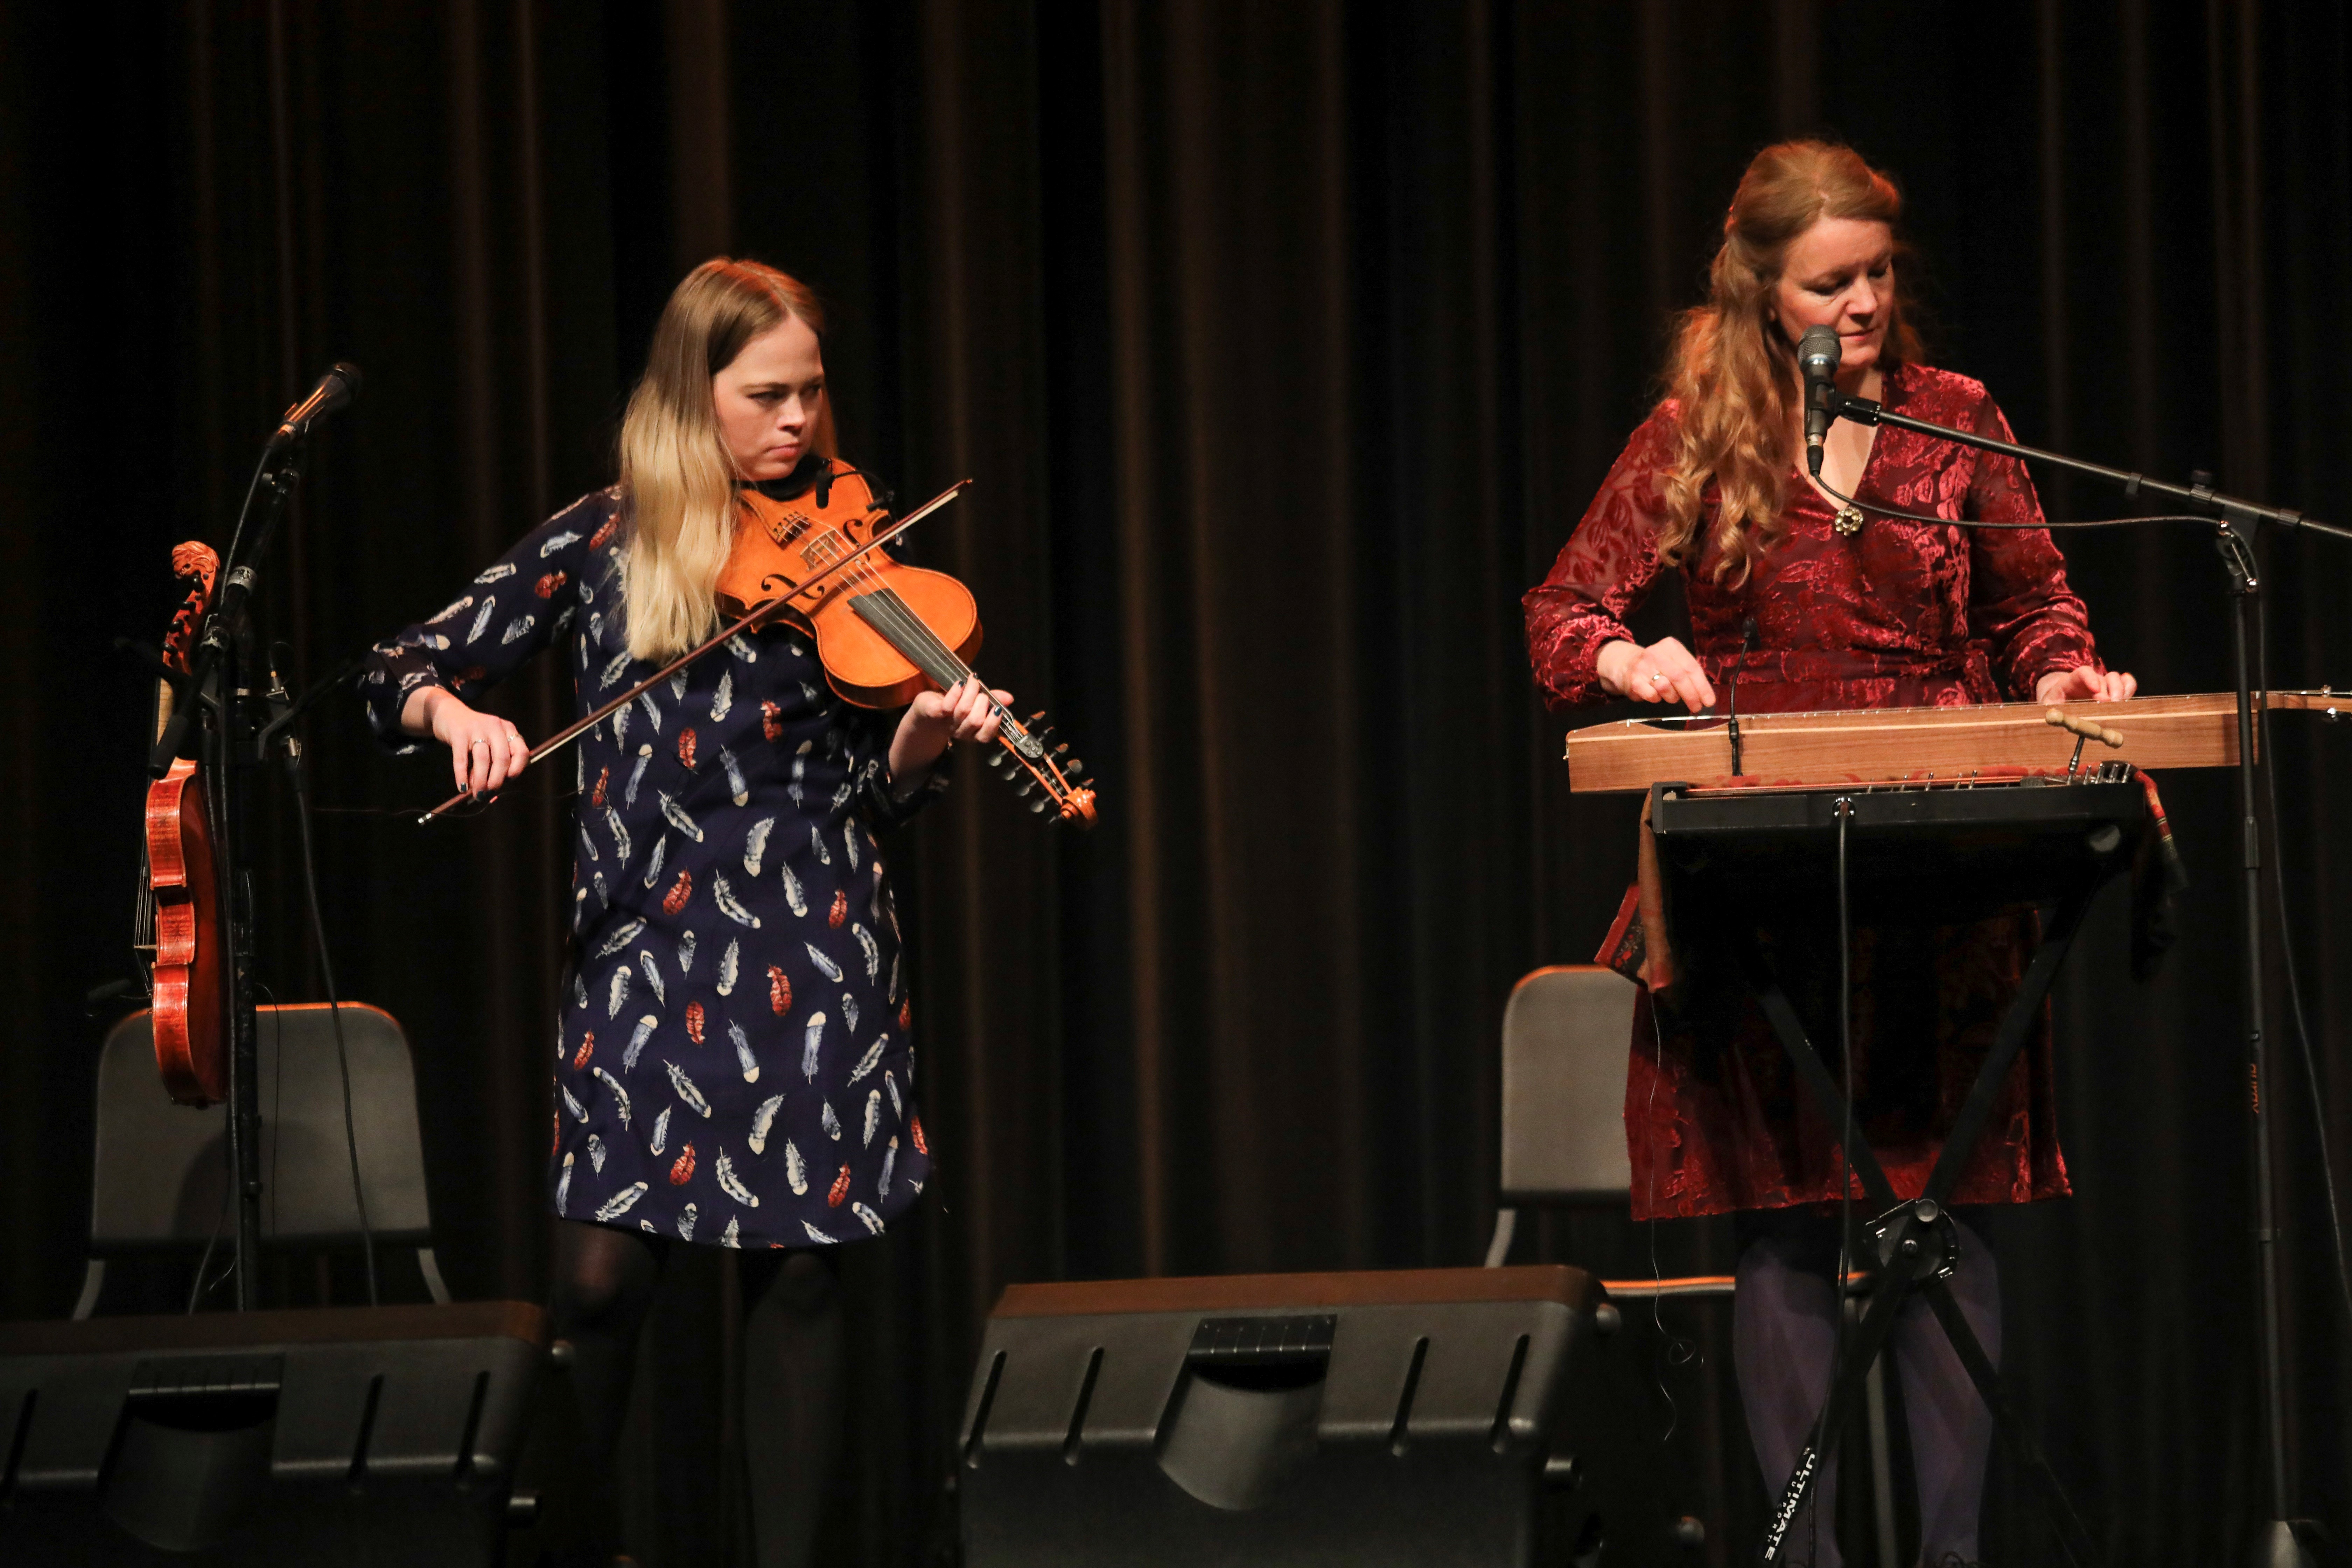 Unni and Guro perform a lovely duet at the public concert in Dickinson.